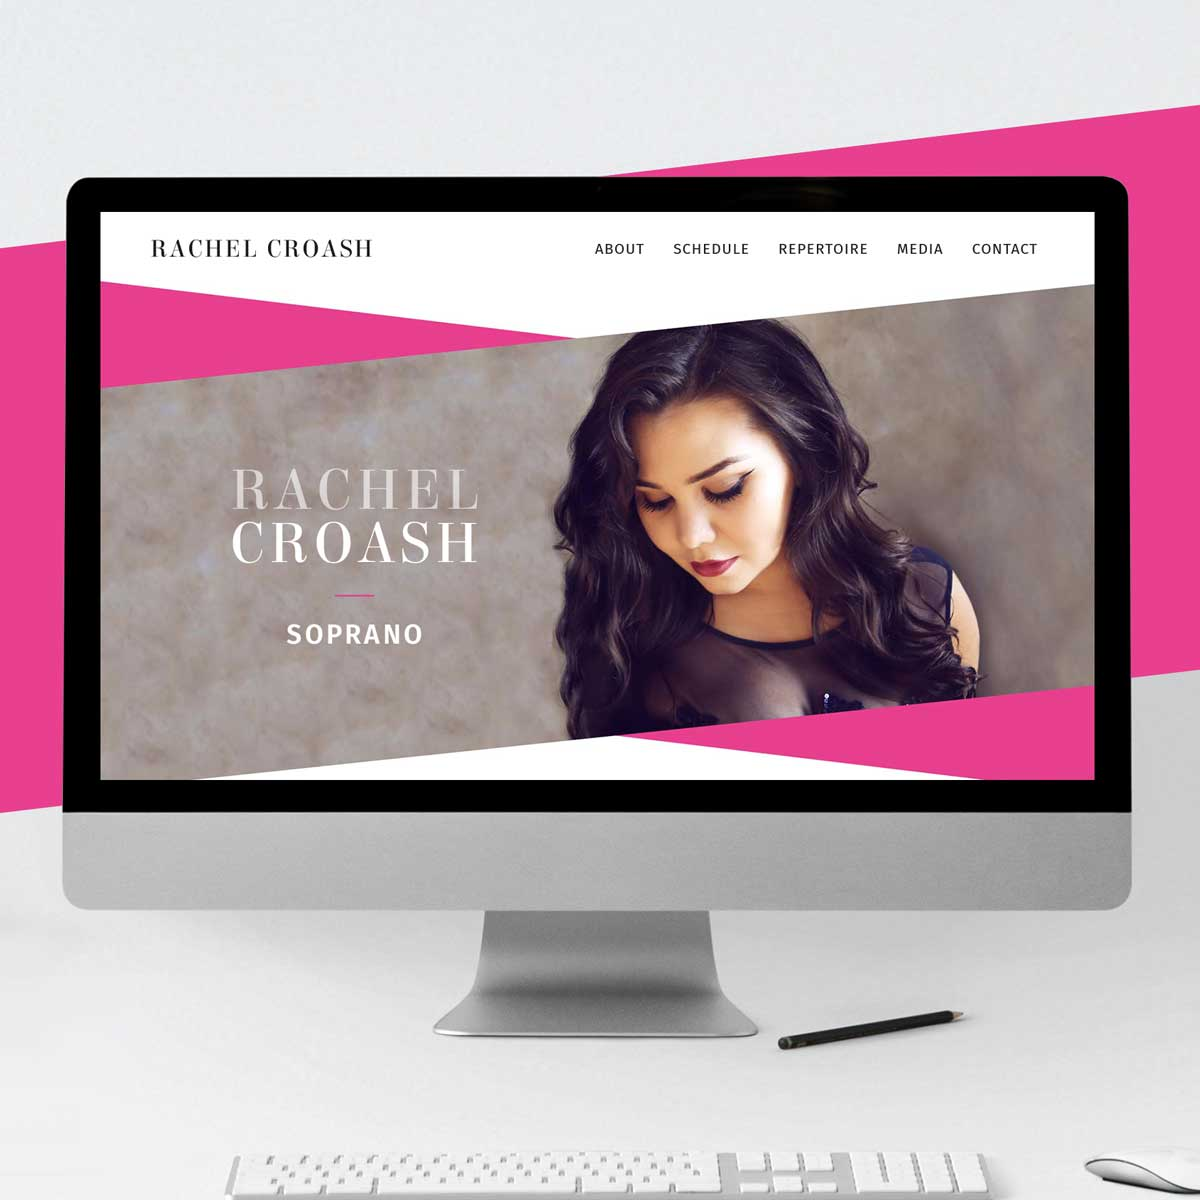 Rachel Croash, Soprano – Responsive website design by Marshall Light Studio